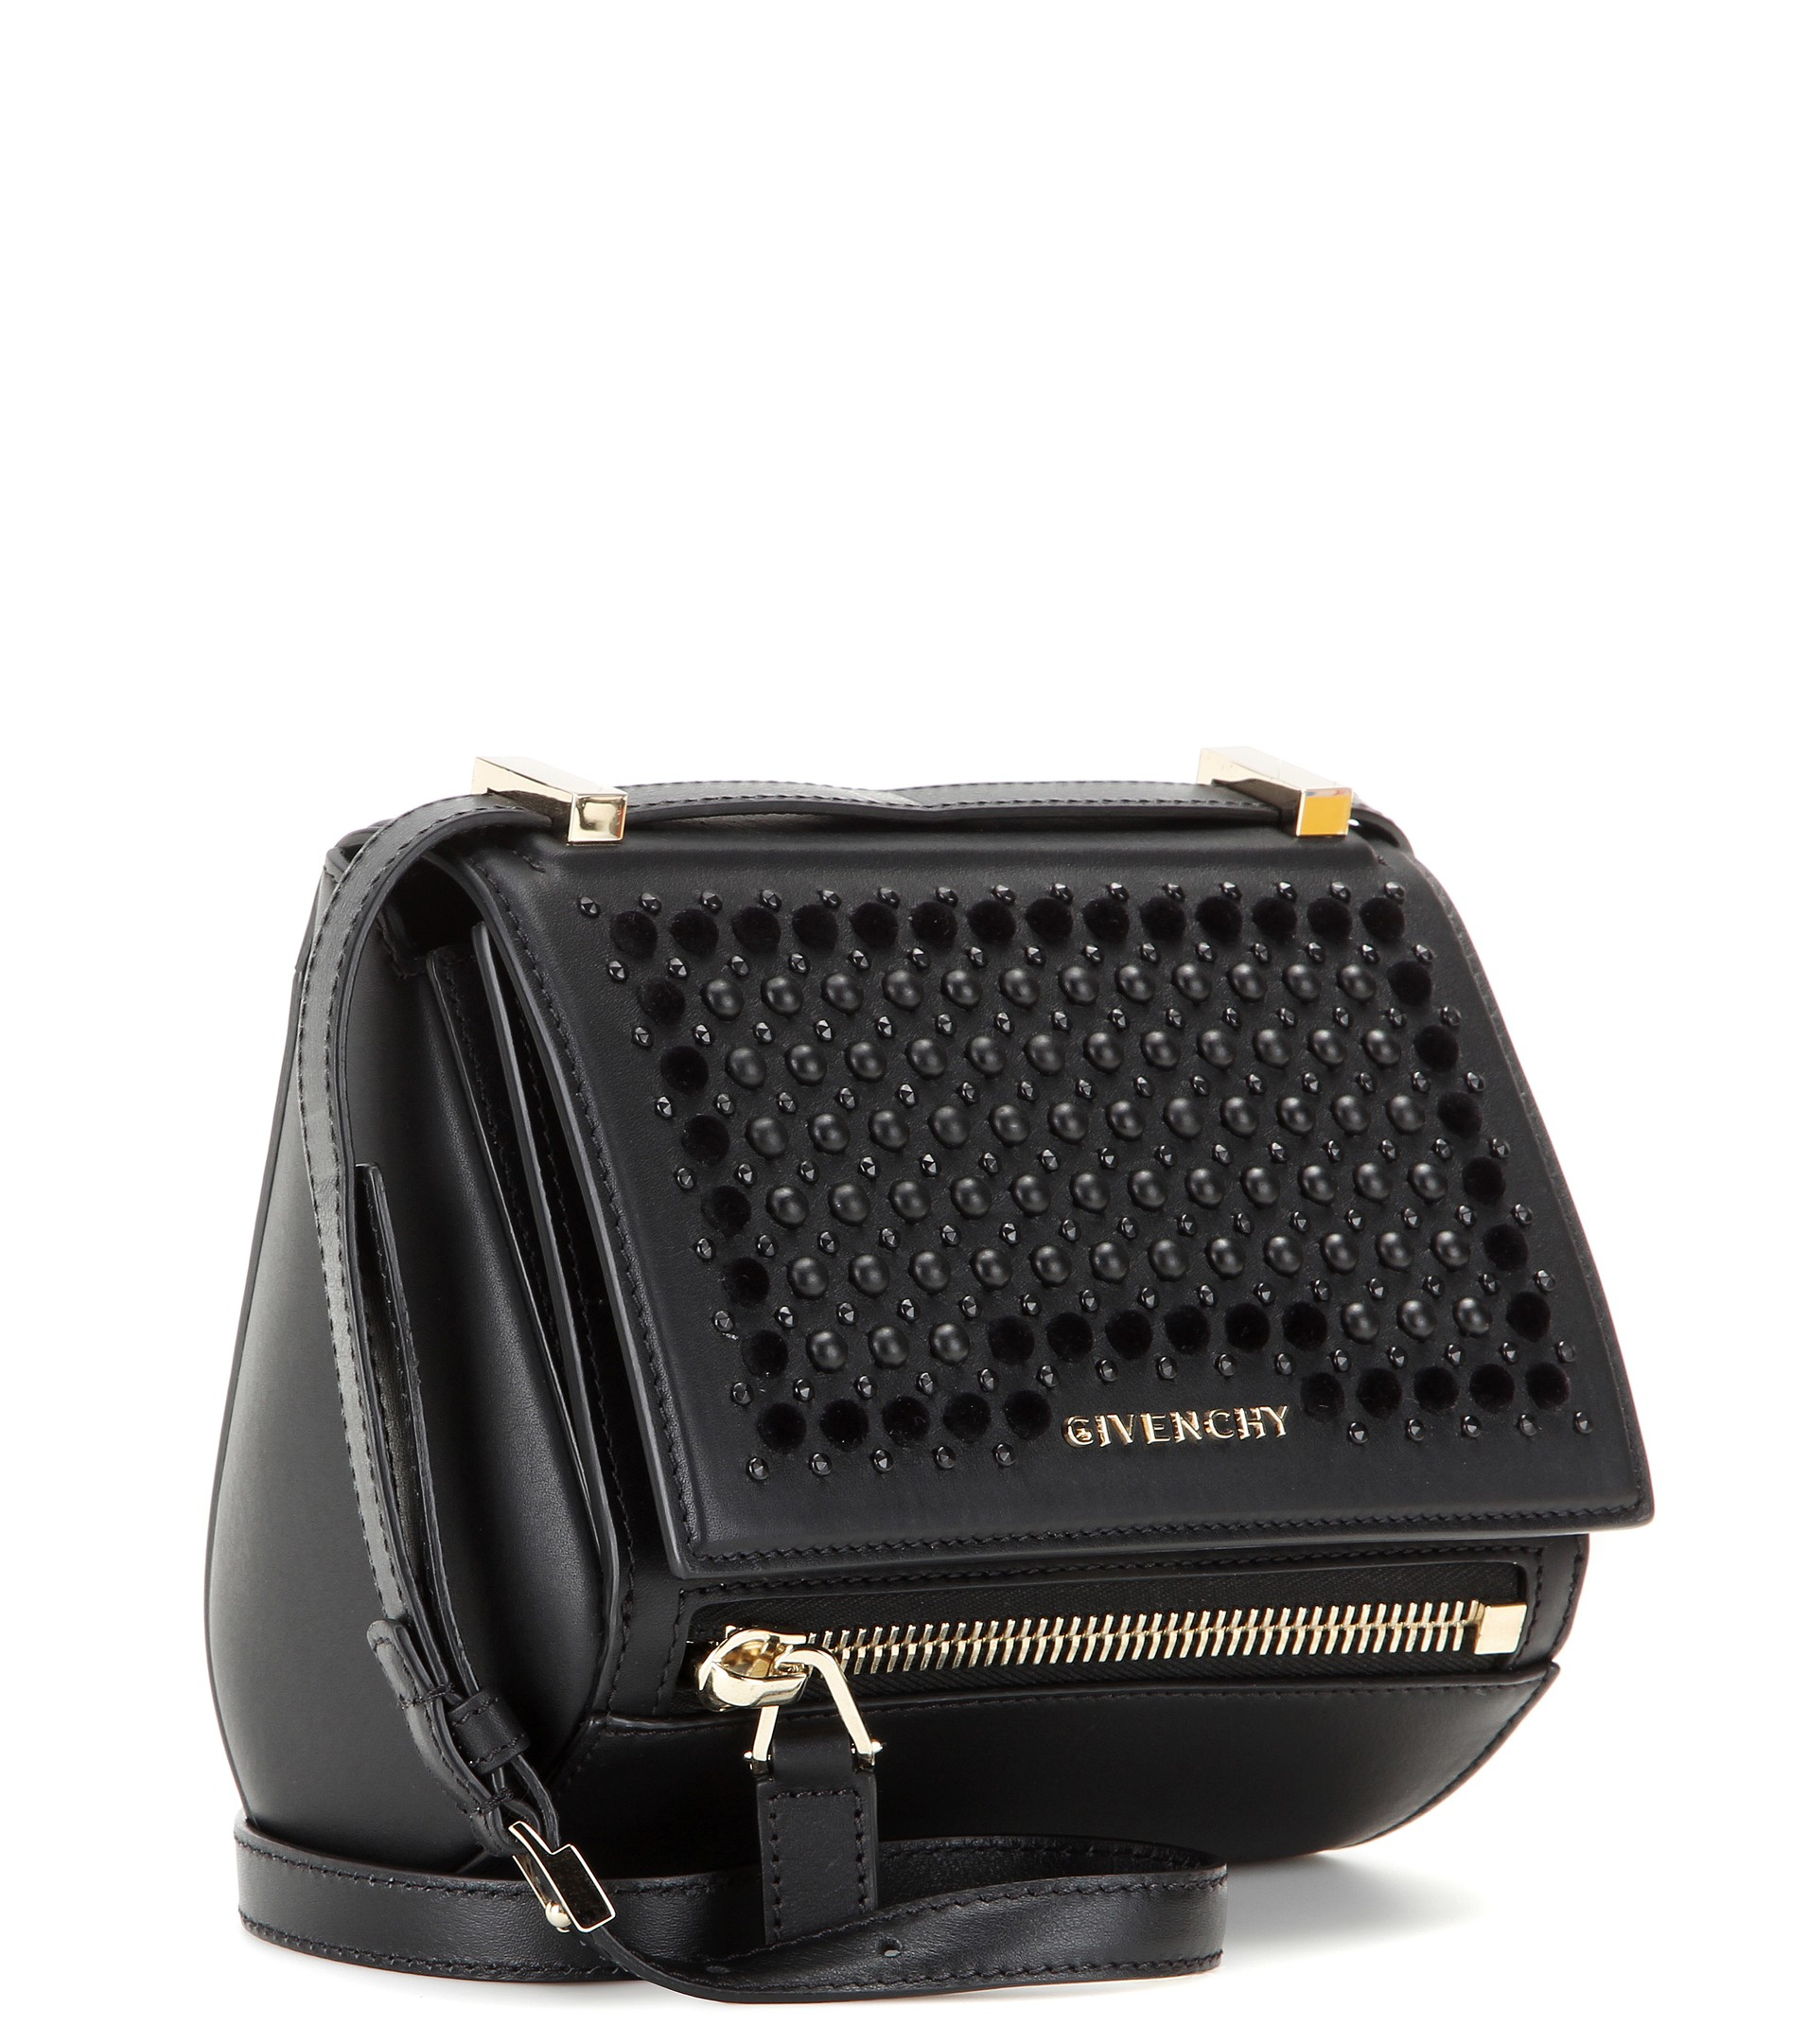 6d999484abb9 Lyst - Givenchy Pandora Box Mini Embellished Leather Shoulder Bag in ...